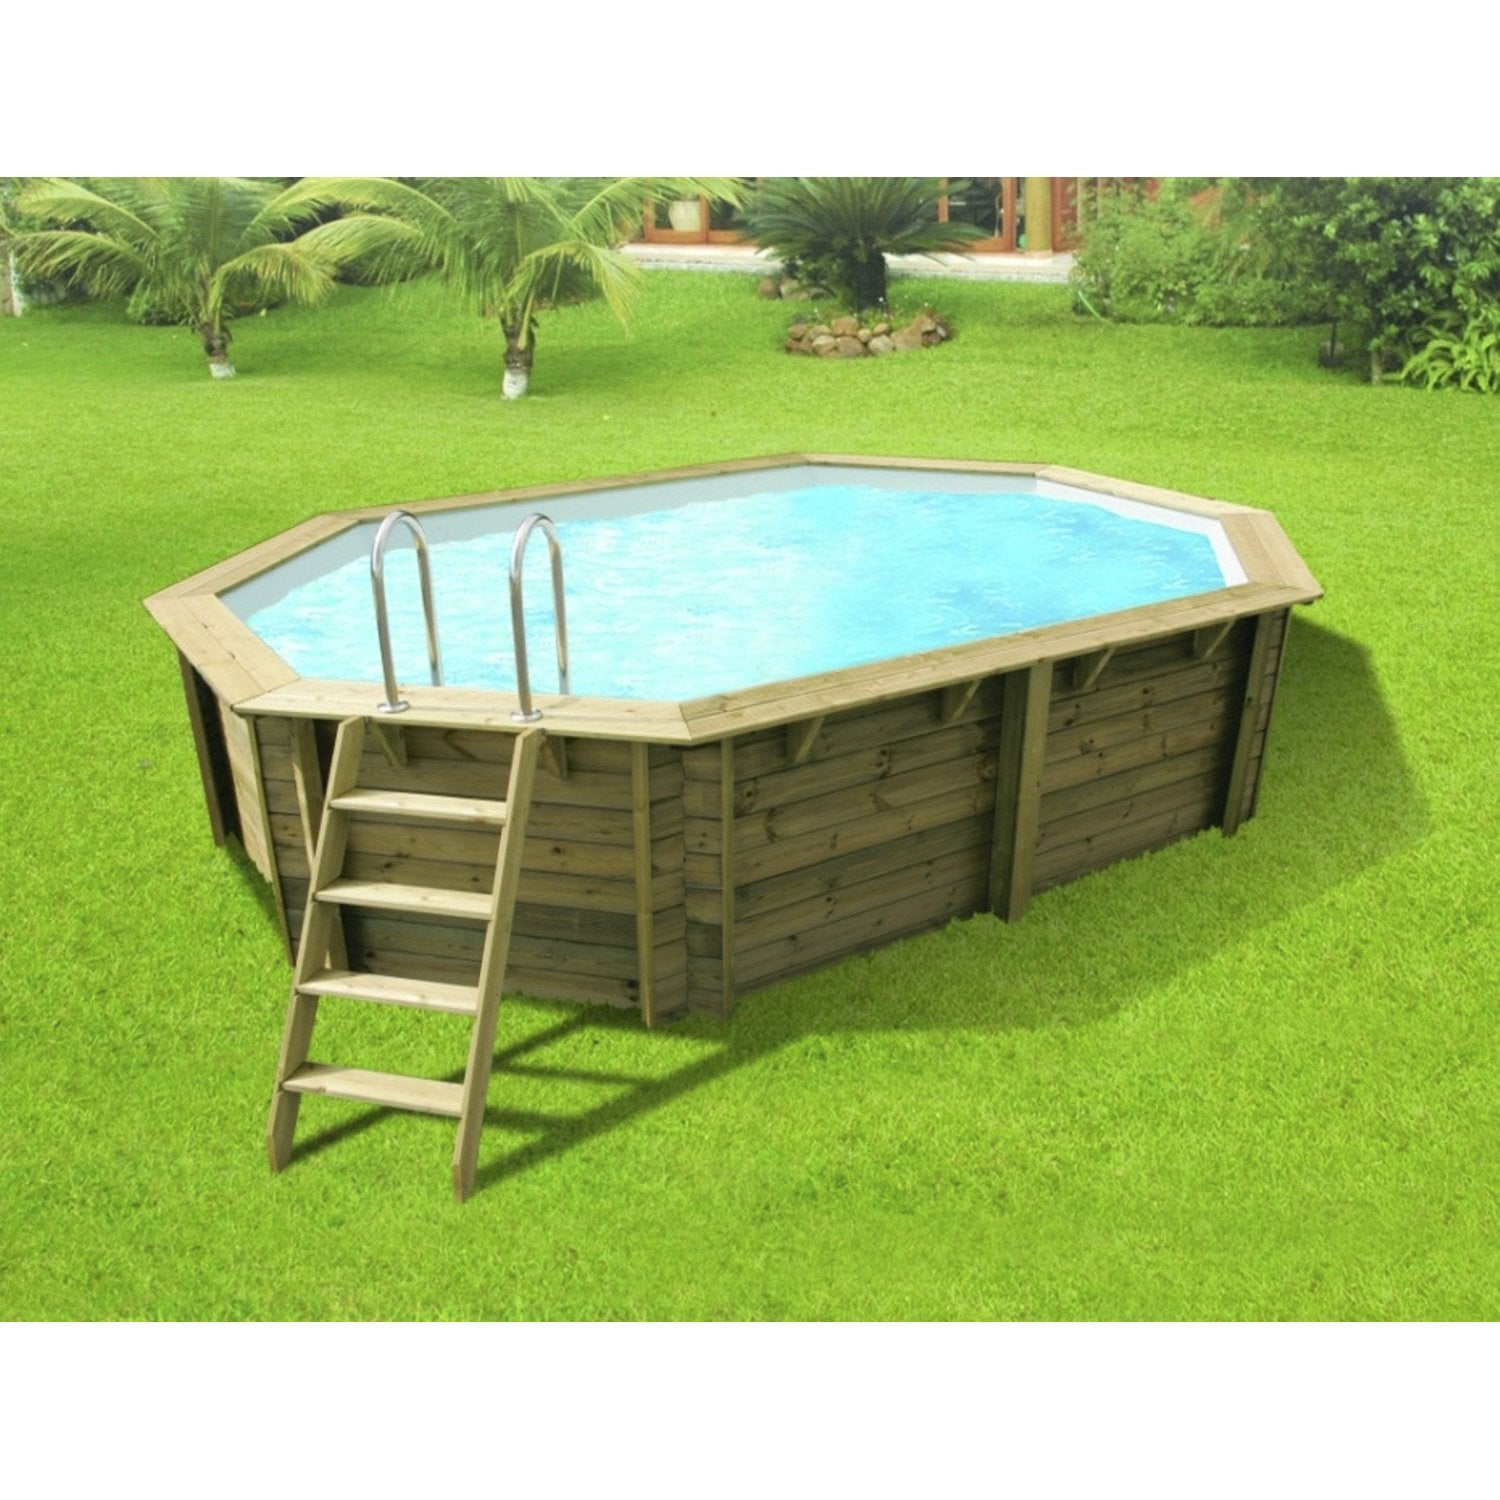 Piscine hors sol bois athena xl diam 6 1 l 6 1 x l 4 x h for Destockage piscine bois semi enterree